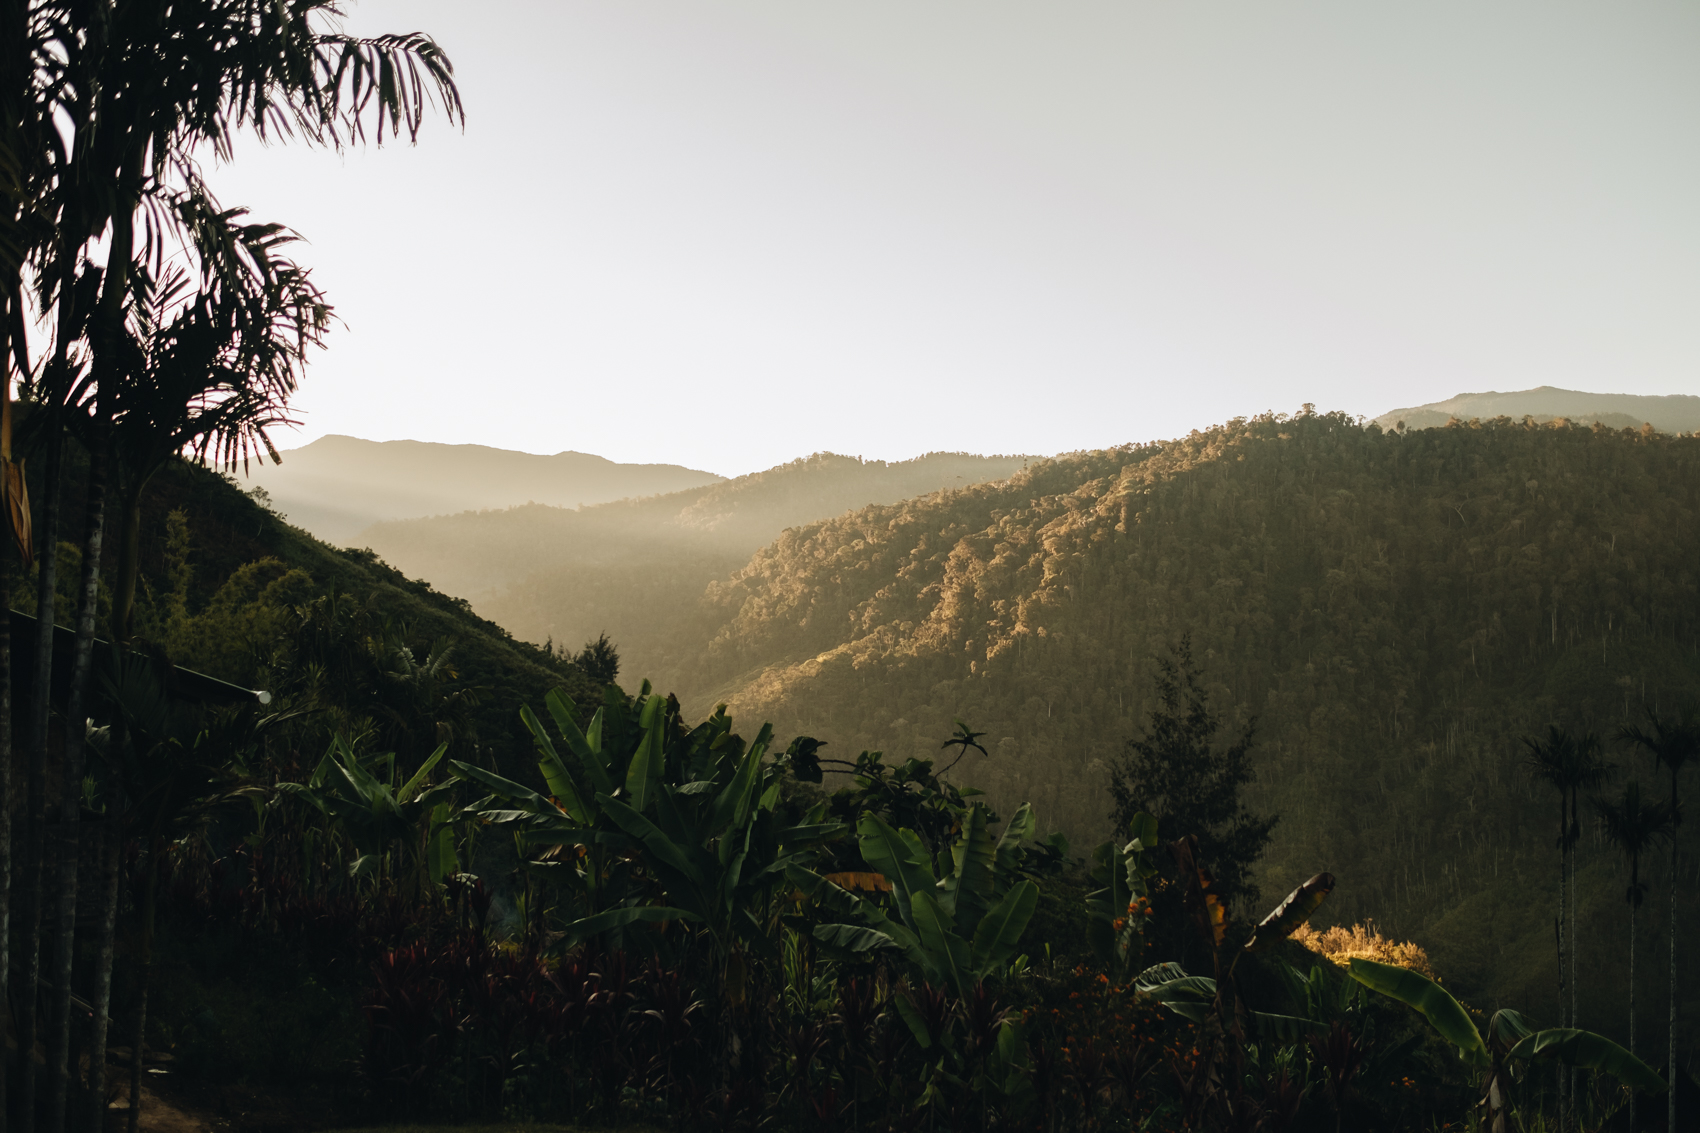 47% - OF PNG POPULATION IS UNREACHED